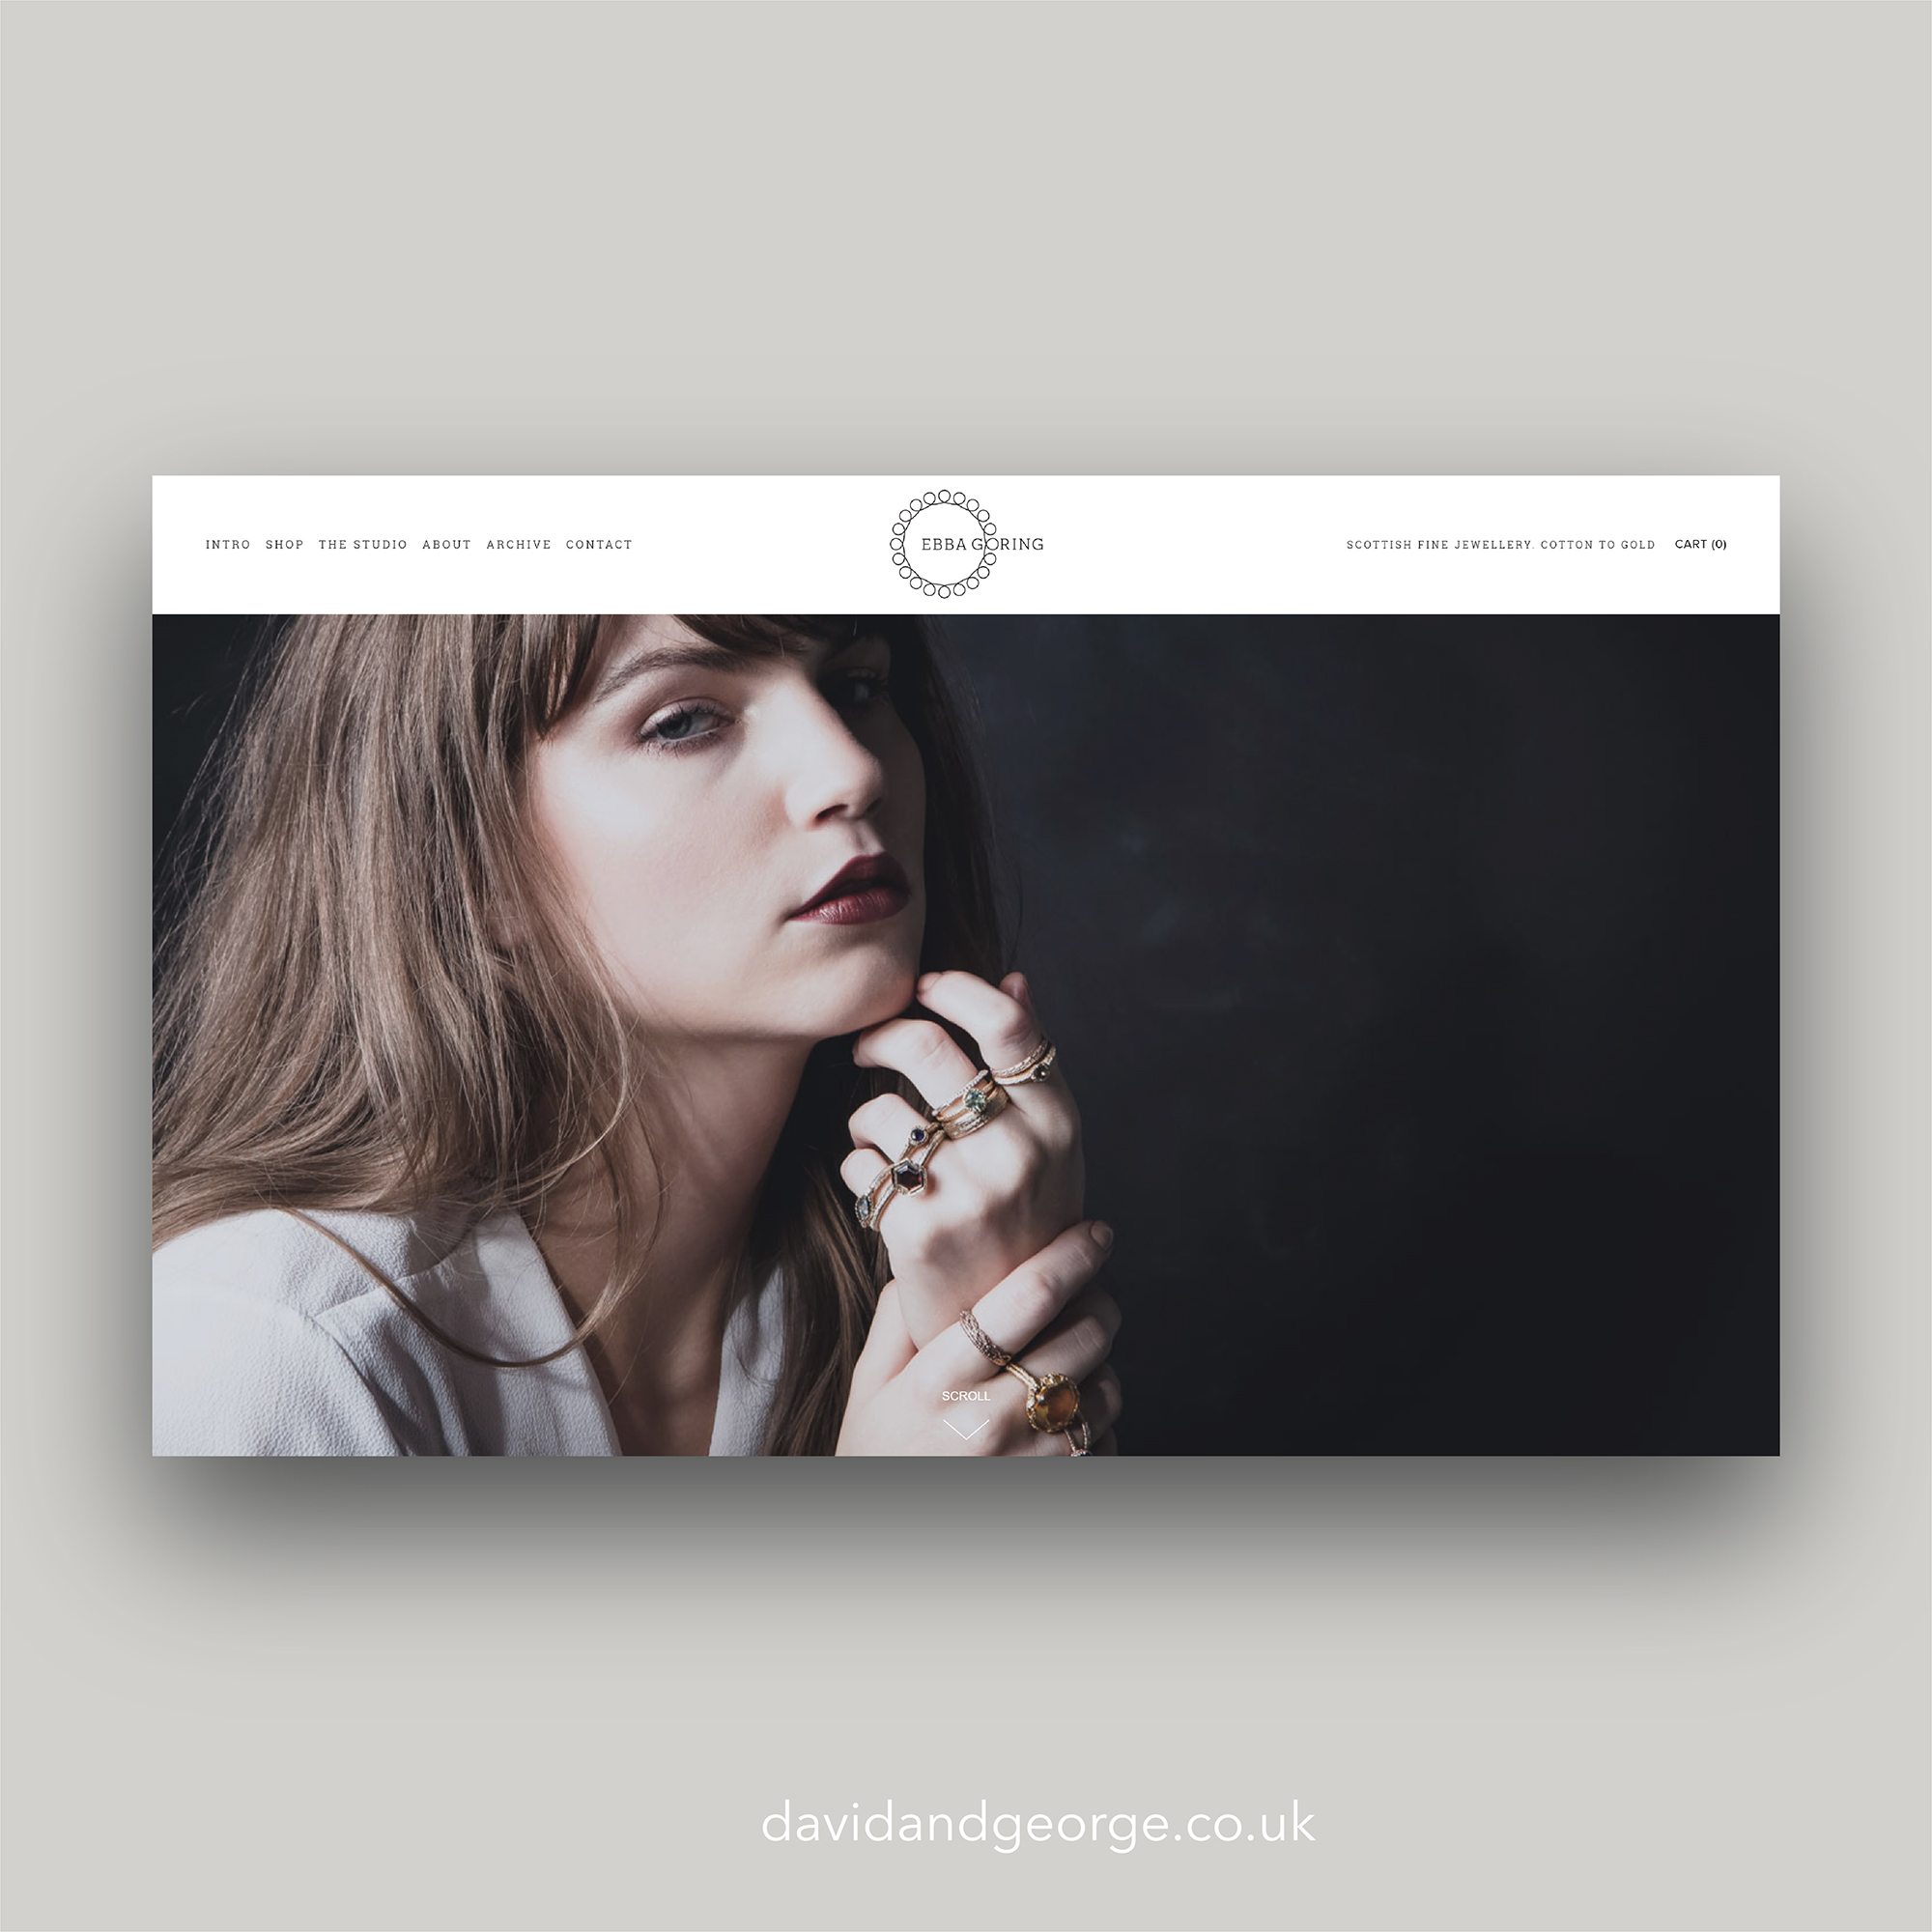 squarespace-website-design-london-edinburgh-uk-david-and-george-ebba-goring-jewellery-maker-scotland.jpg